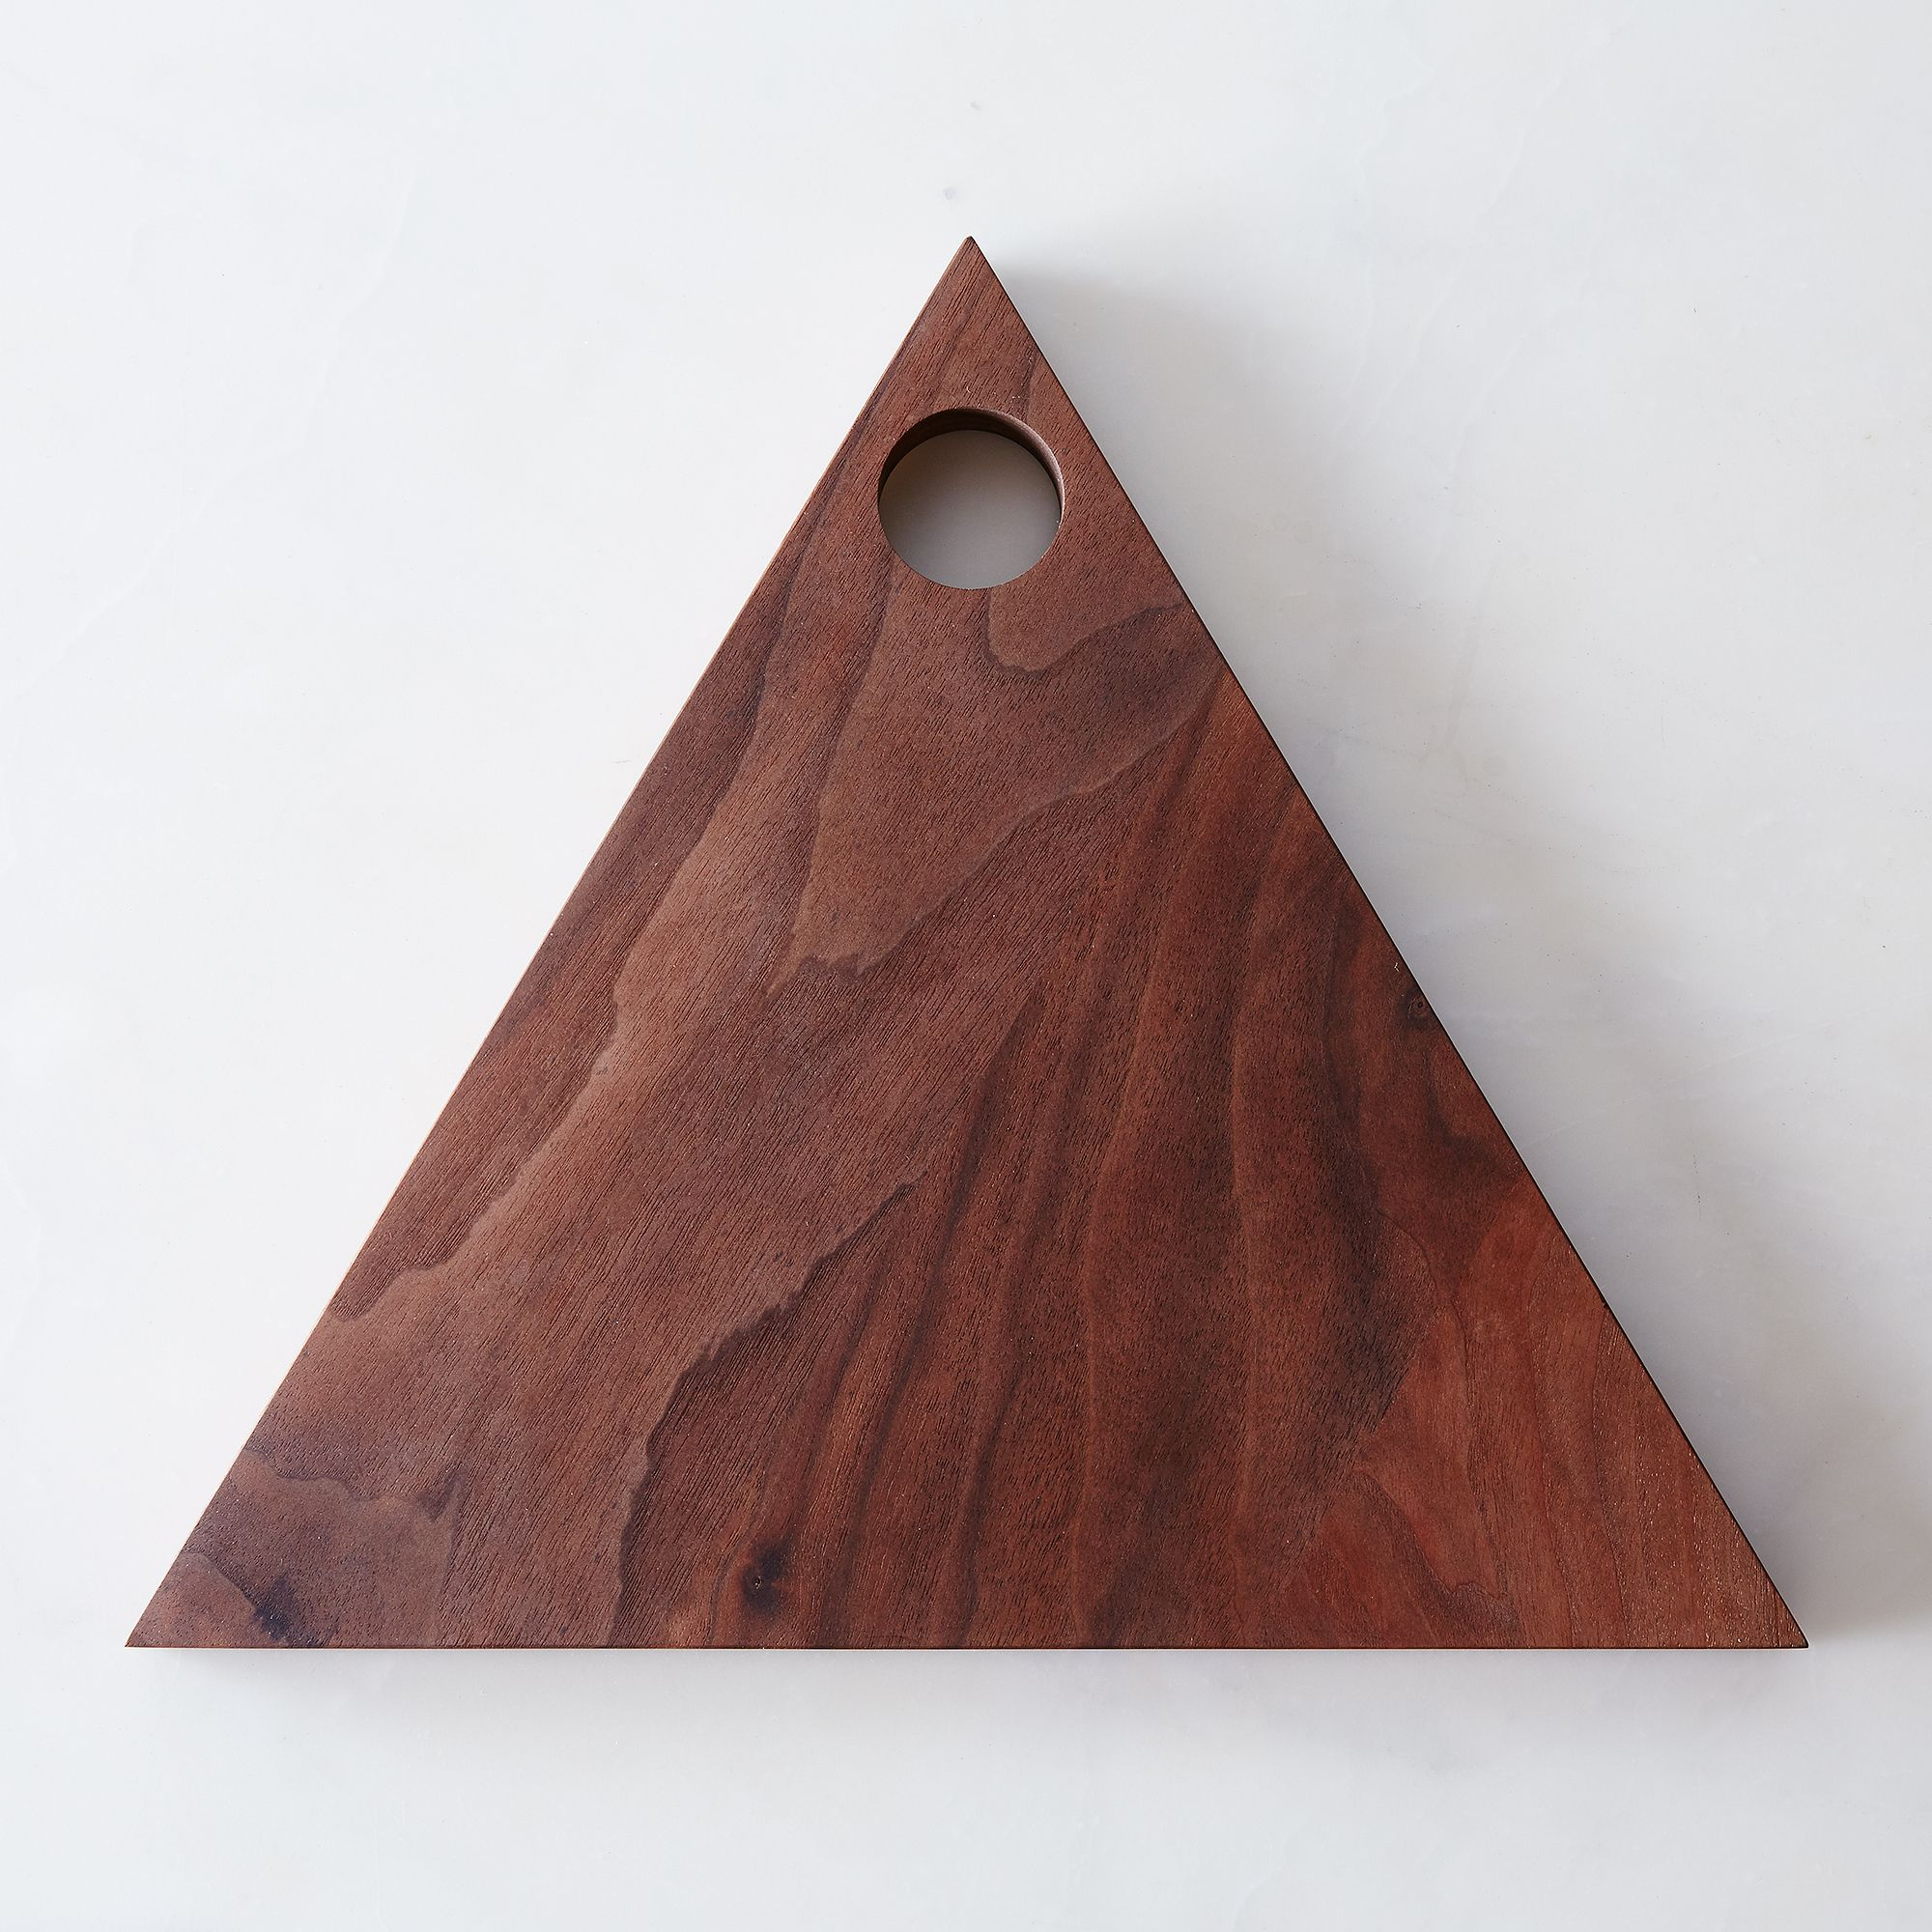 2ae2fb80 a0f8 11e5 a190 0ef7535729df  2015 0422 caravan pacific triangular wooden cutting board walnut silo 016